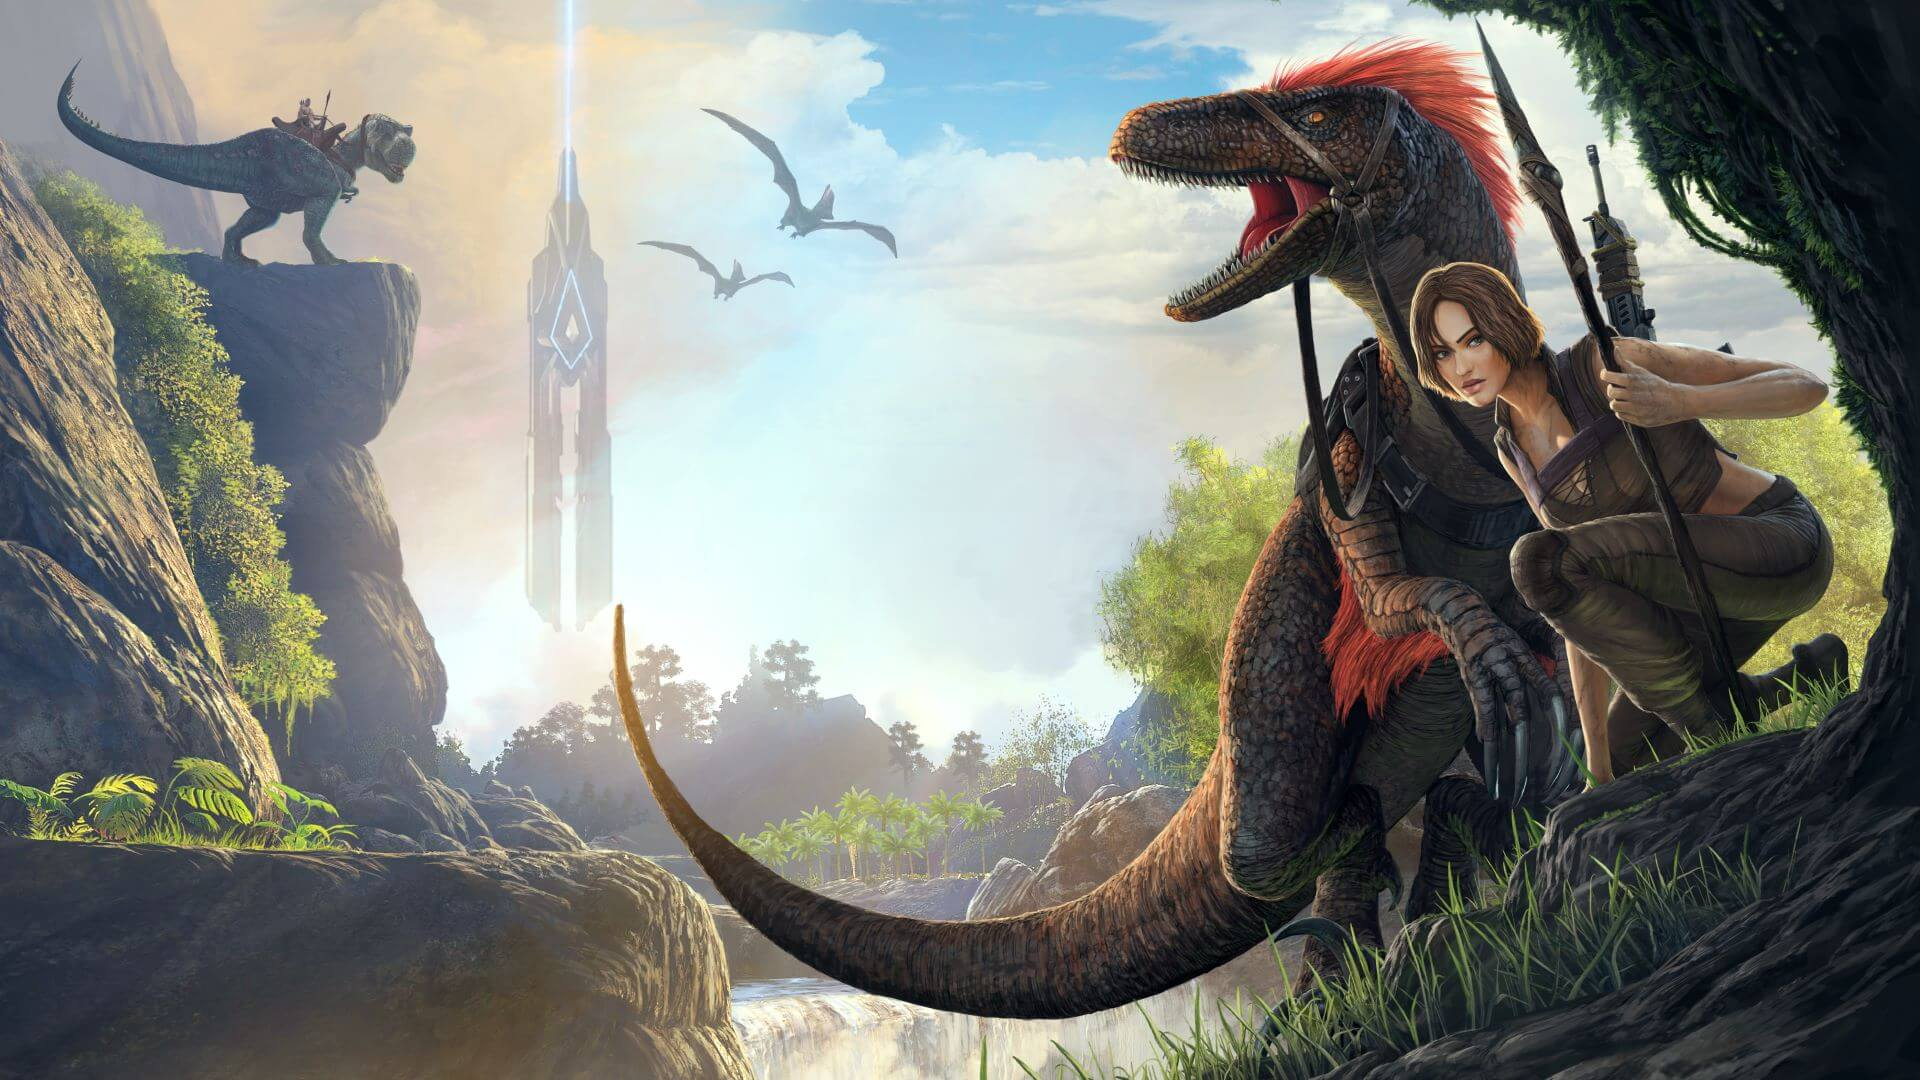 ARK: Survival Evolved & Samurai Shodown Neo-Geo Collection are free to own on Epic Games Store